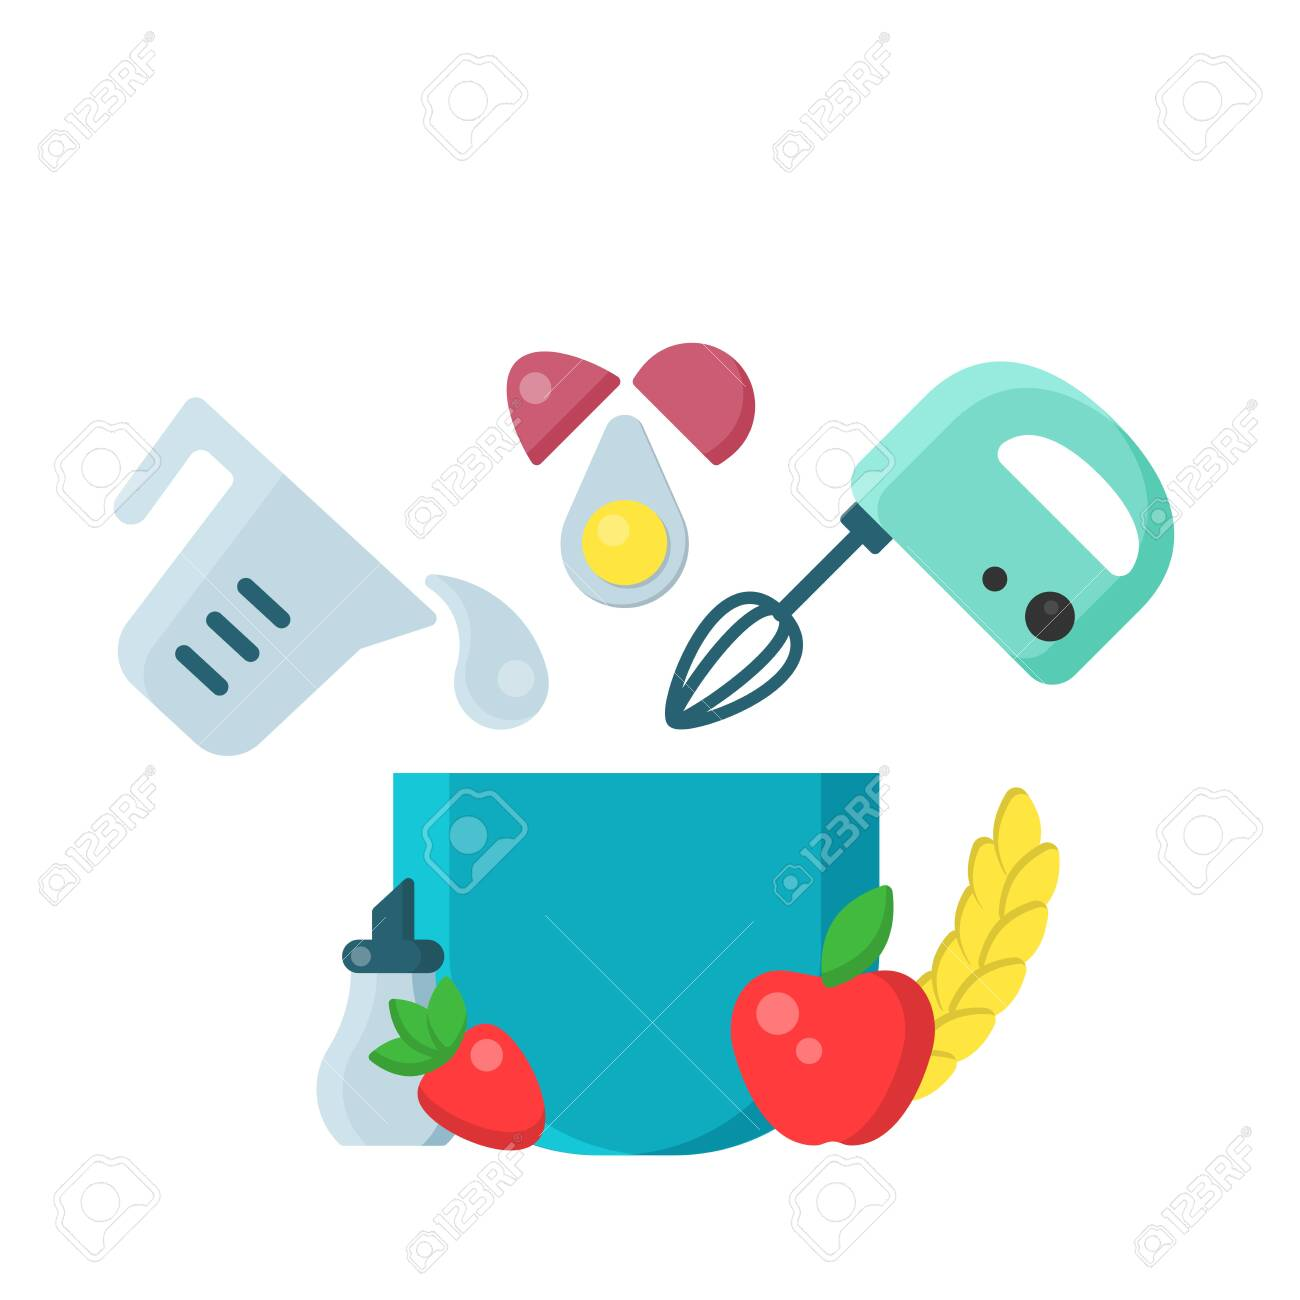 culinary bright vector concept with mixer and baking products in flat style on white background - 130984753